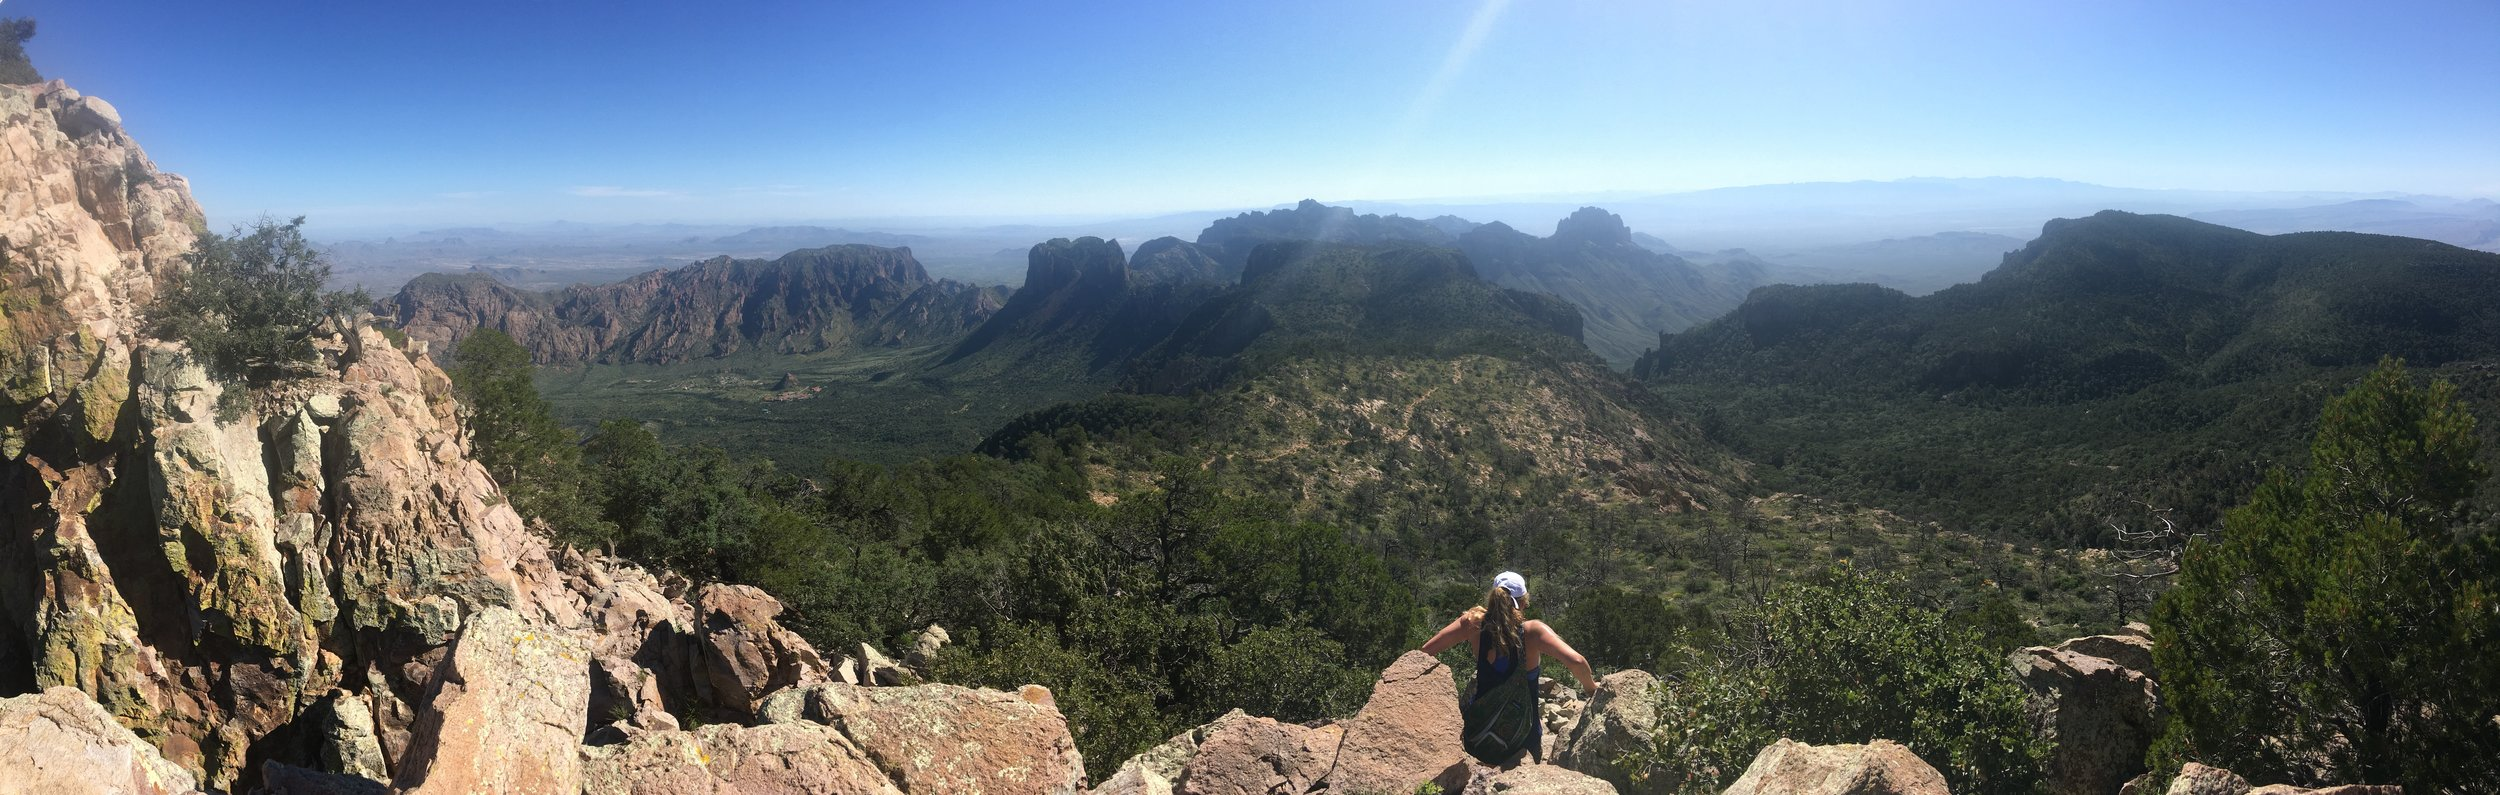 Scrambling down from Emory Peak. BEAUTIFUL CHISOS I'LL BE BACK.